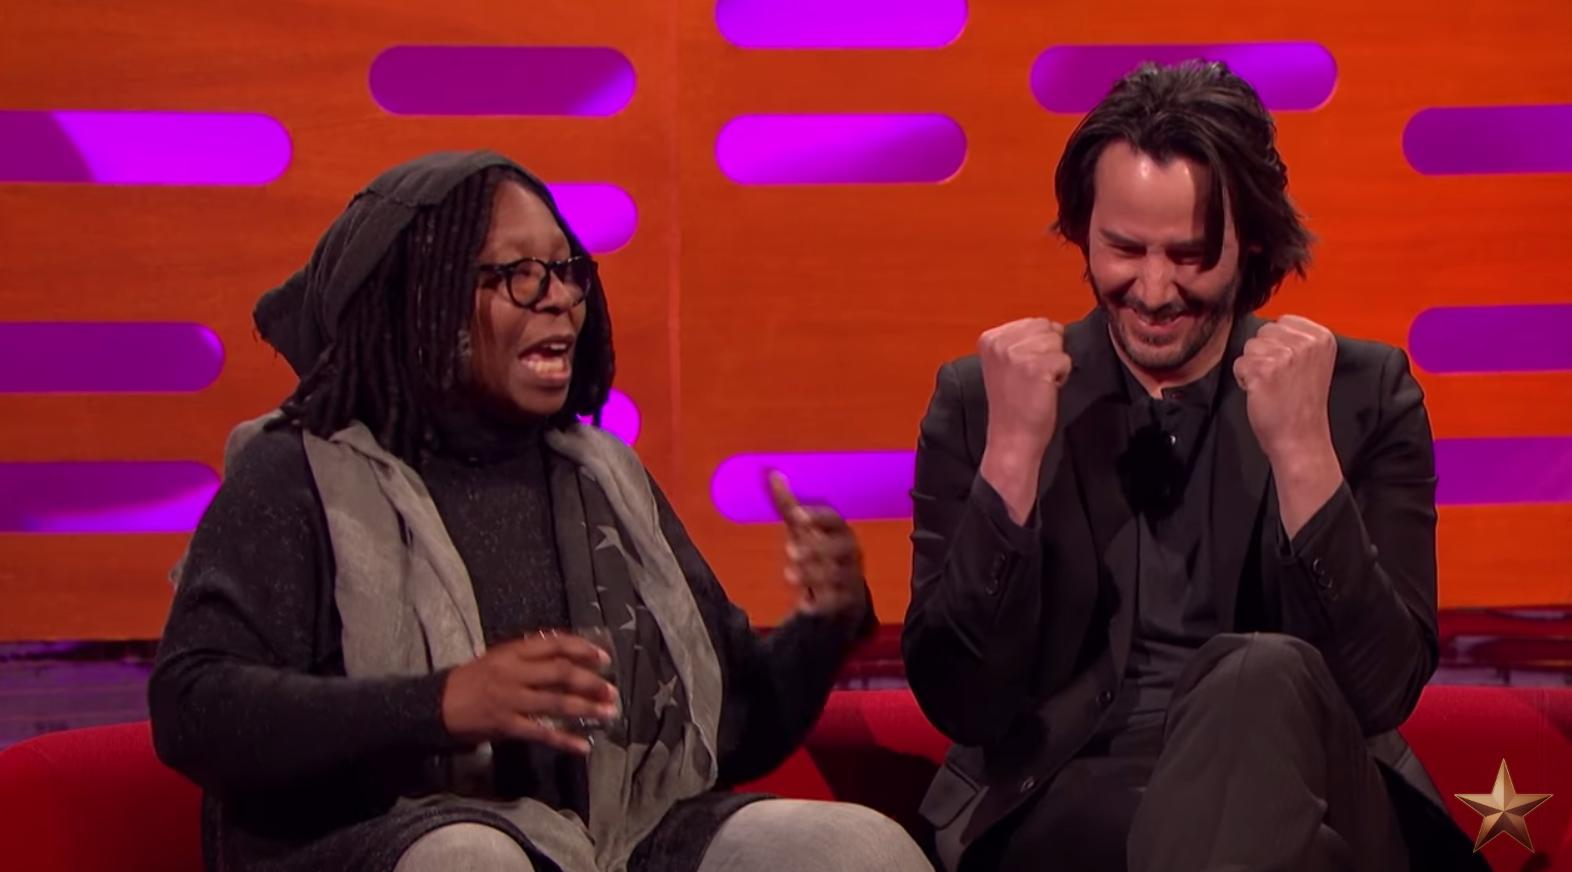 Whoopi Goldberg Enlightens Keanu Reeves On Losing Her Pubic Hair